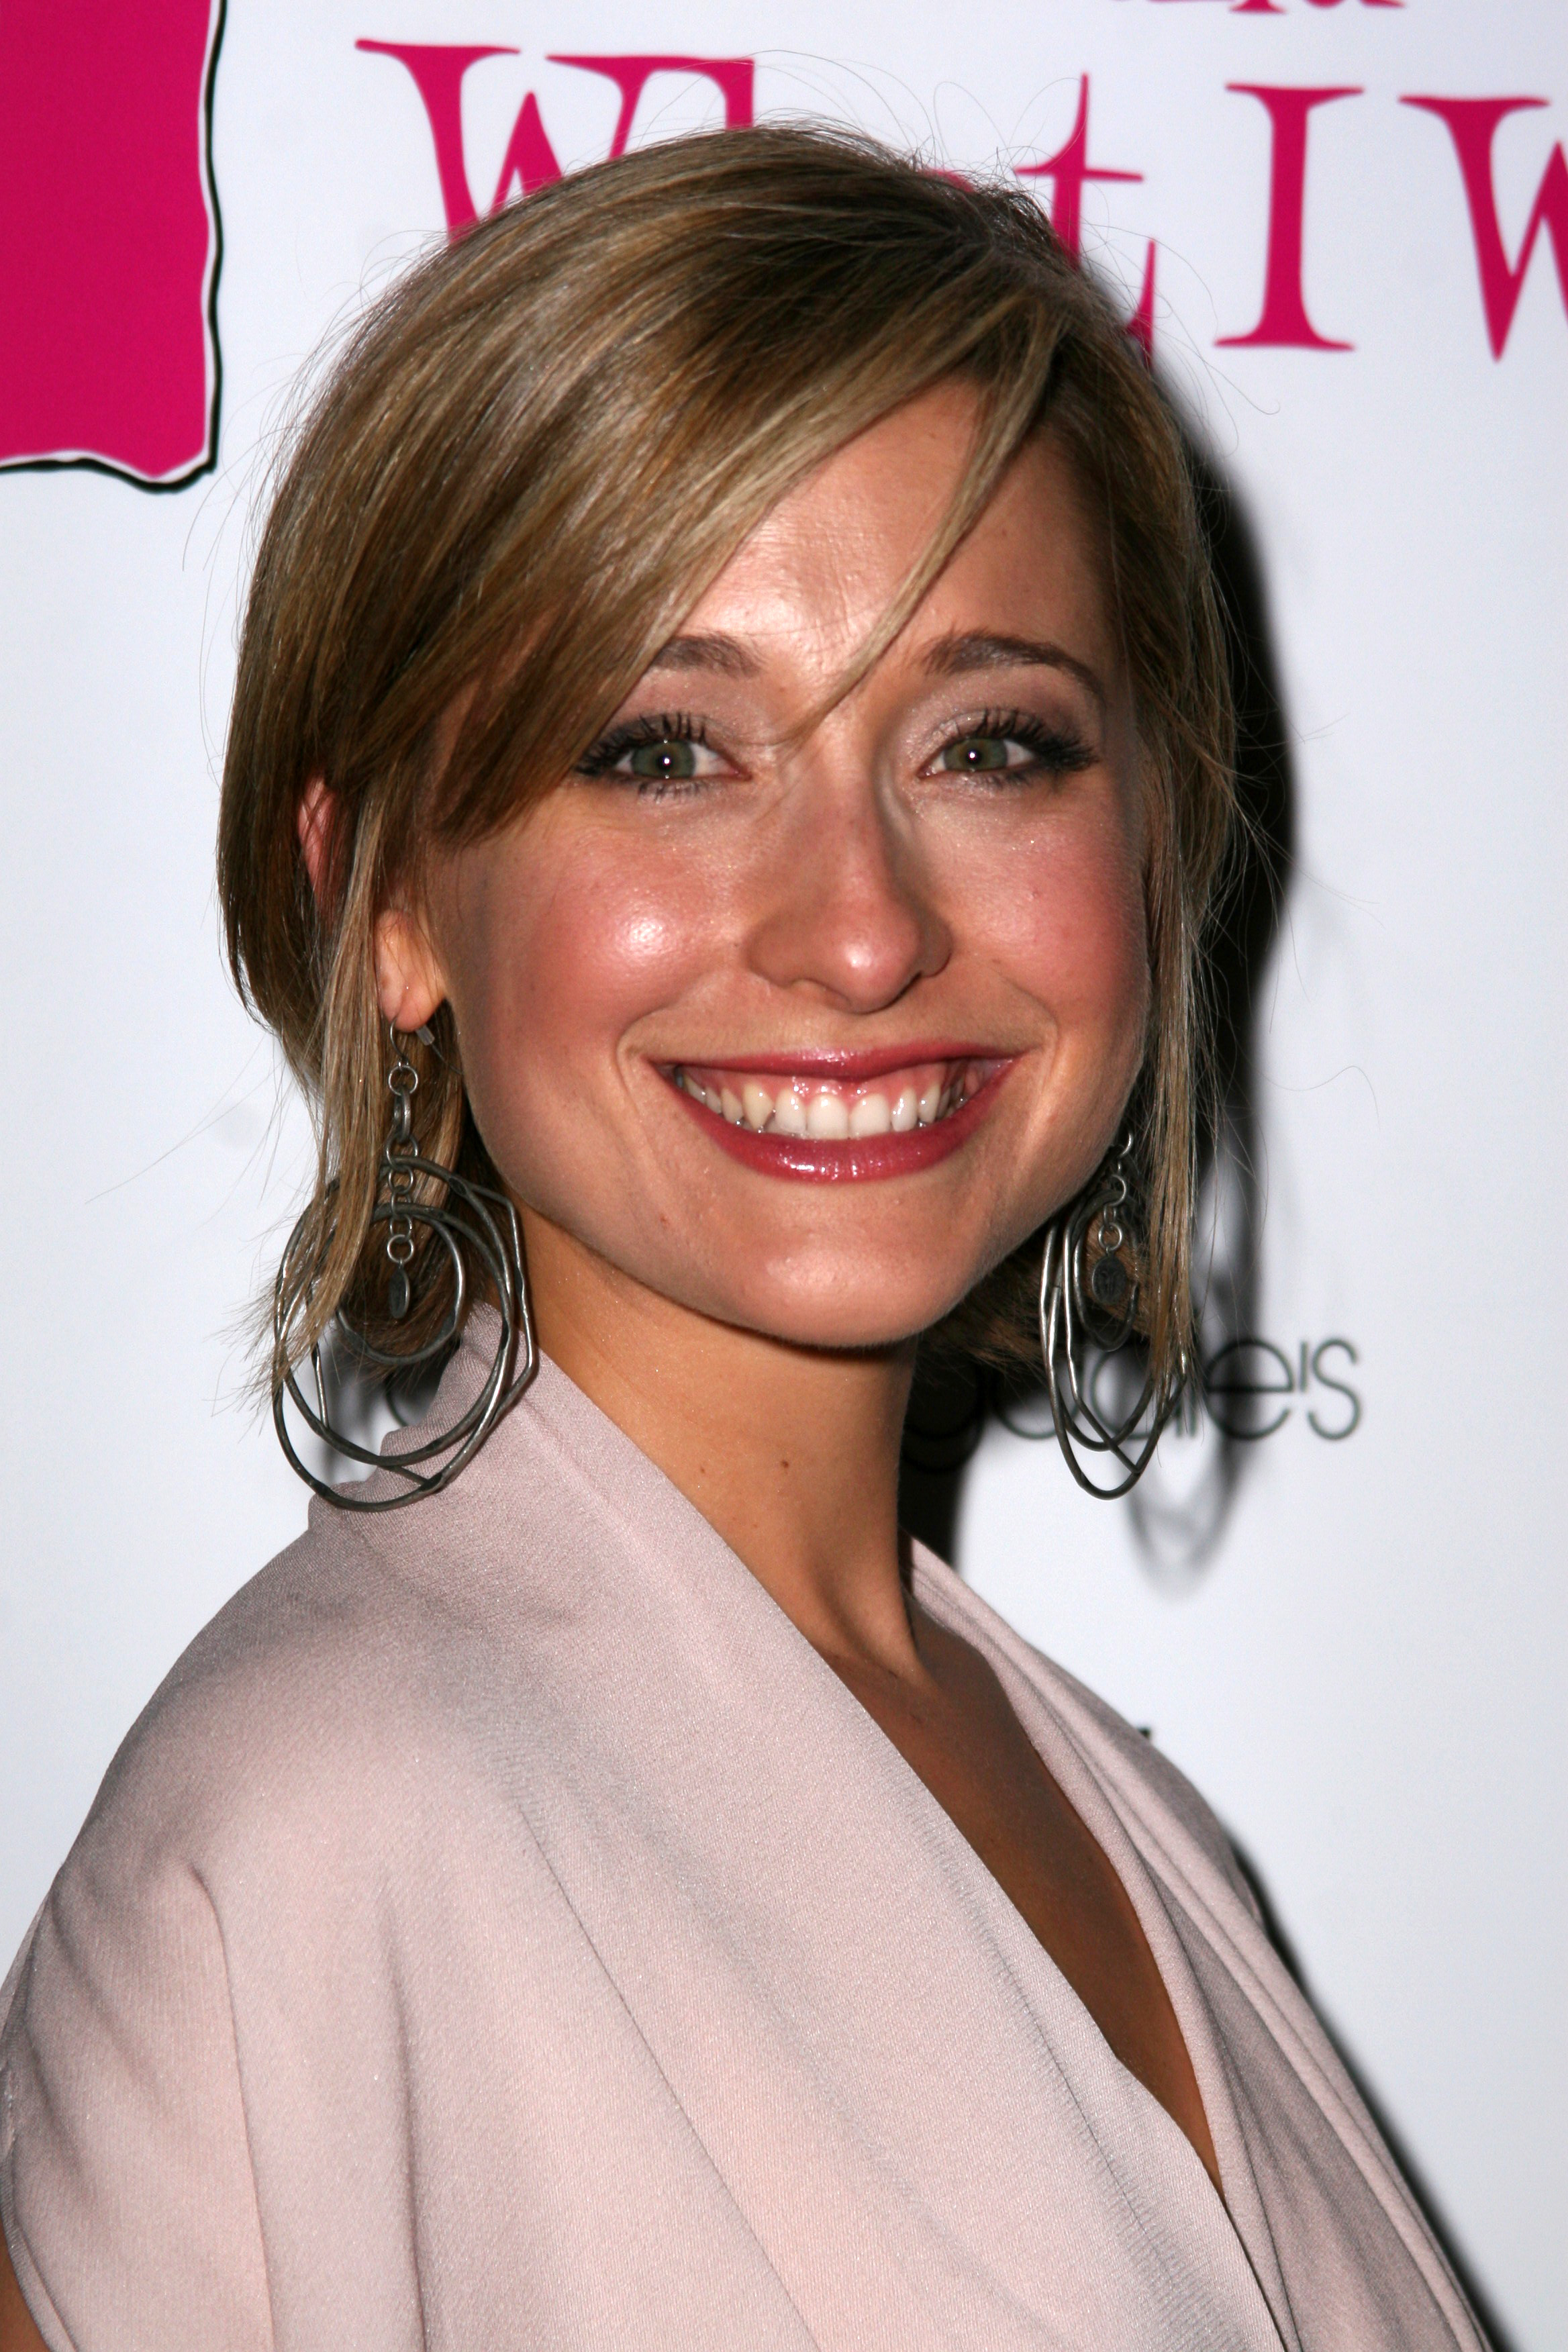 Smallville Actress Allison Mack Arrested In Sex Trafficking Scheme Deadline